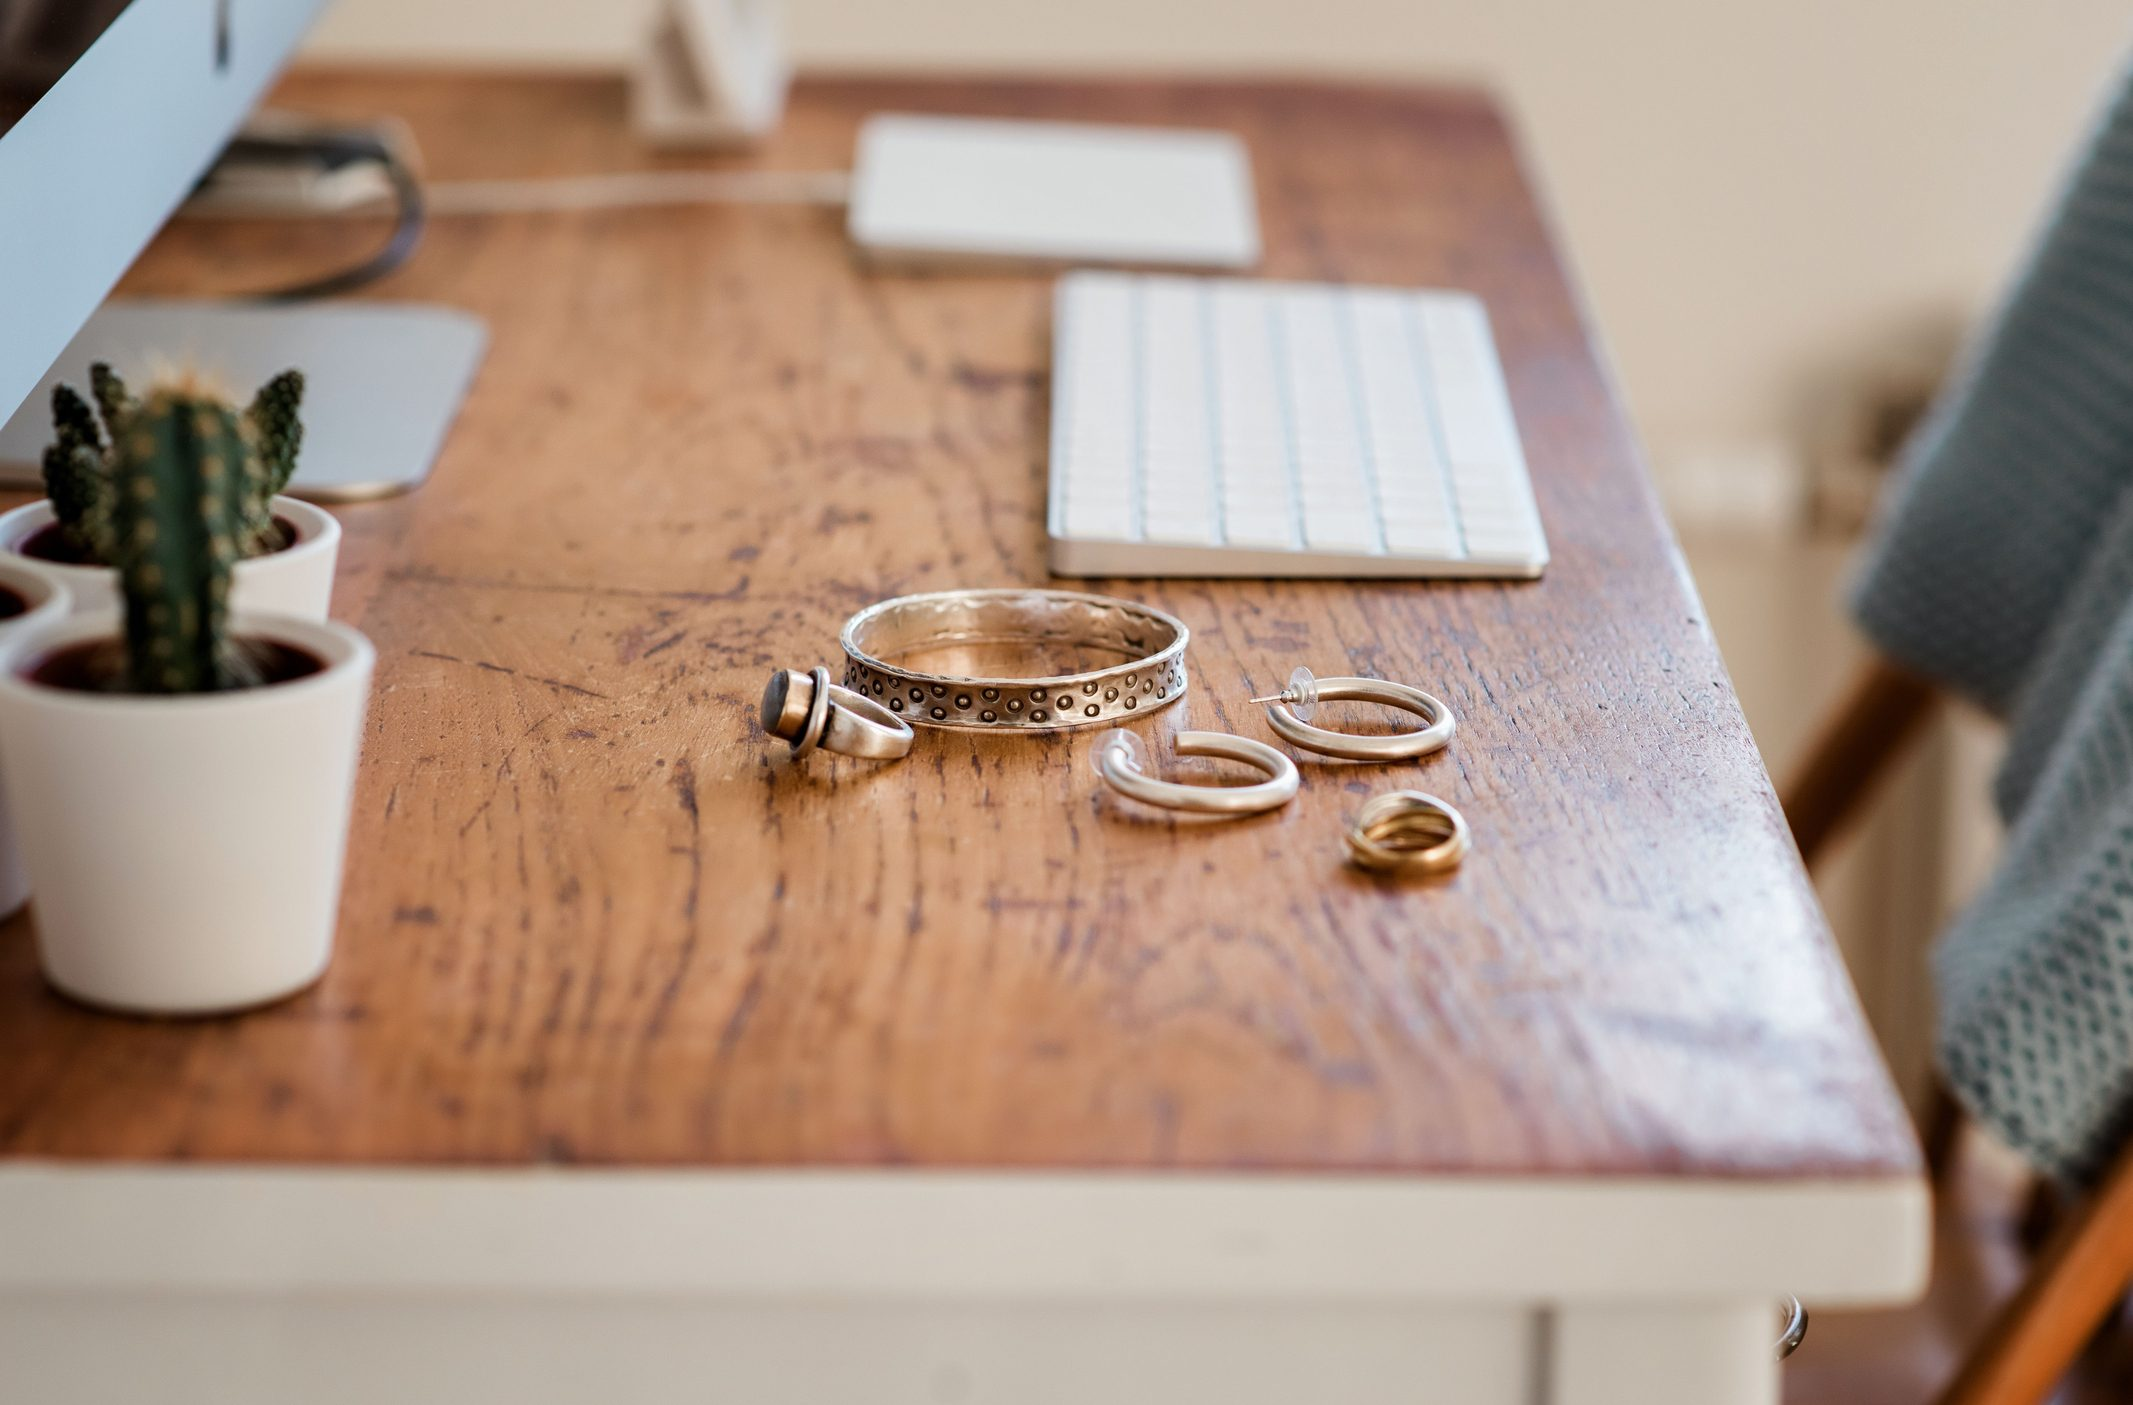 jewelry on wooden desk